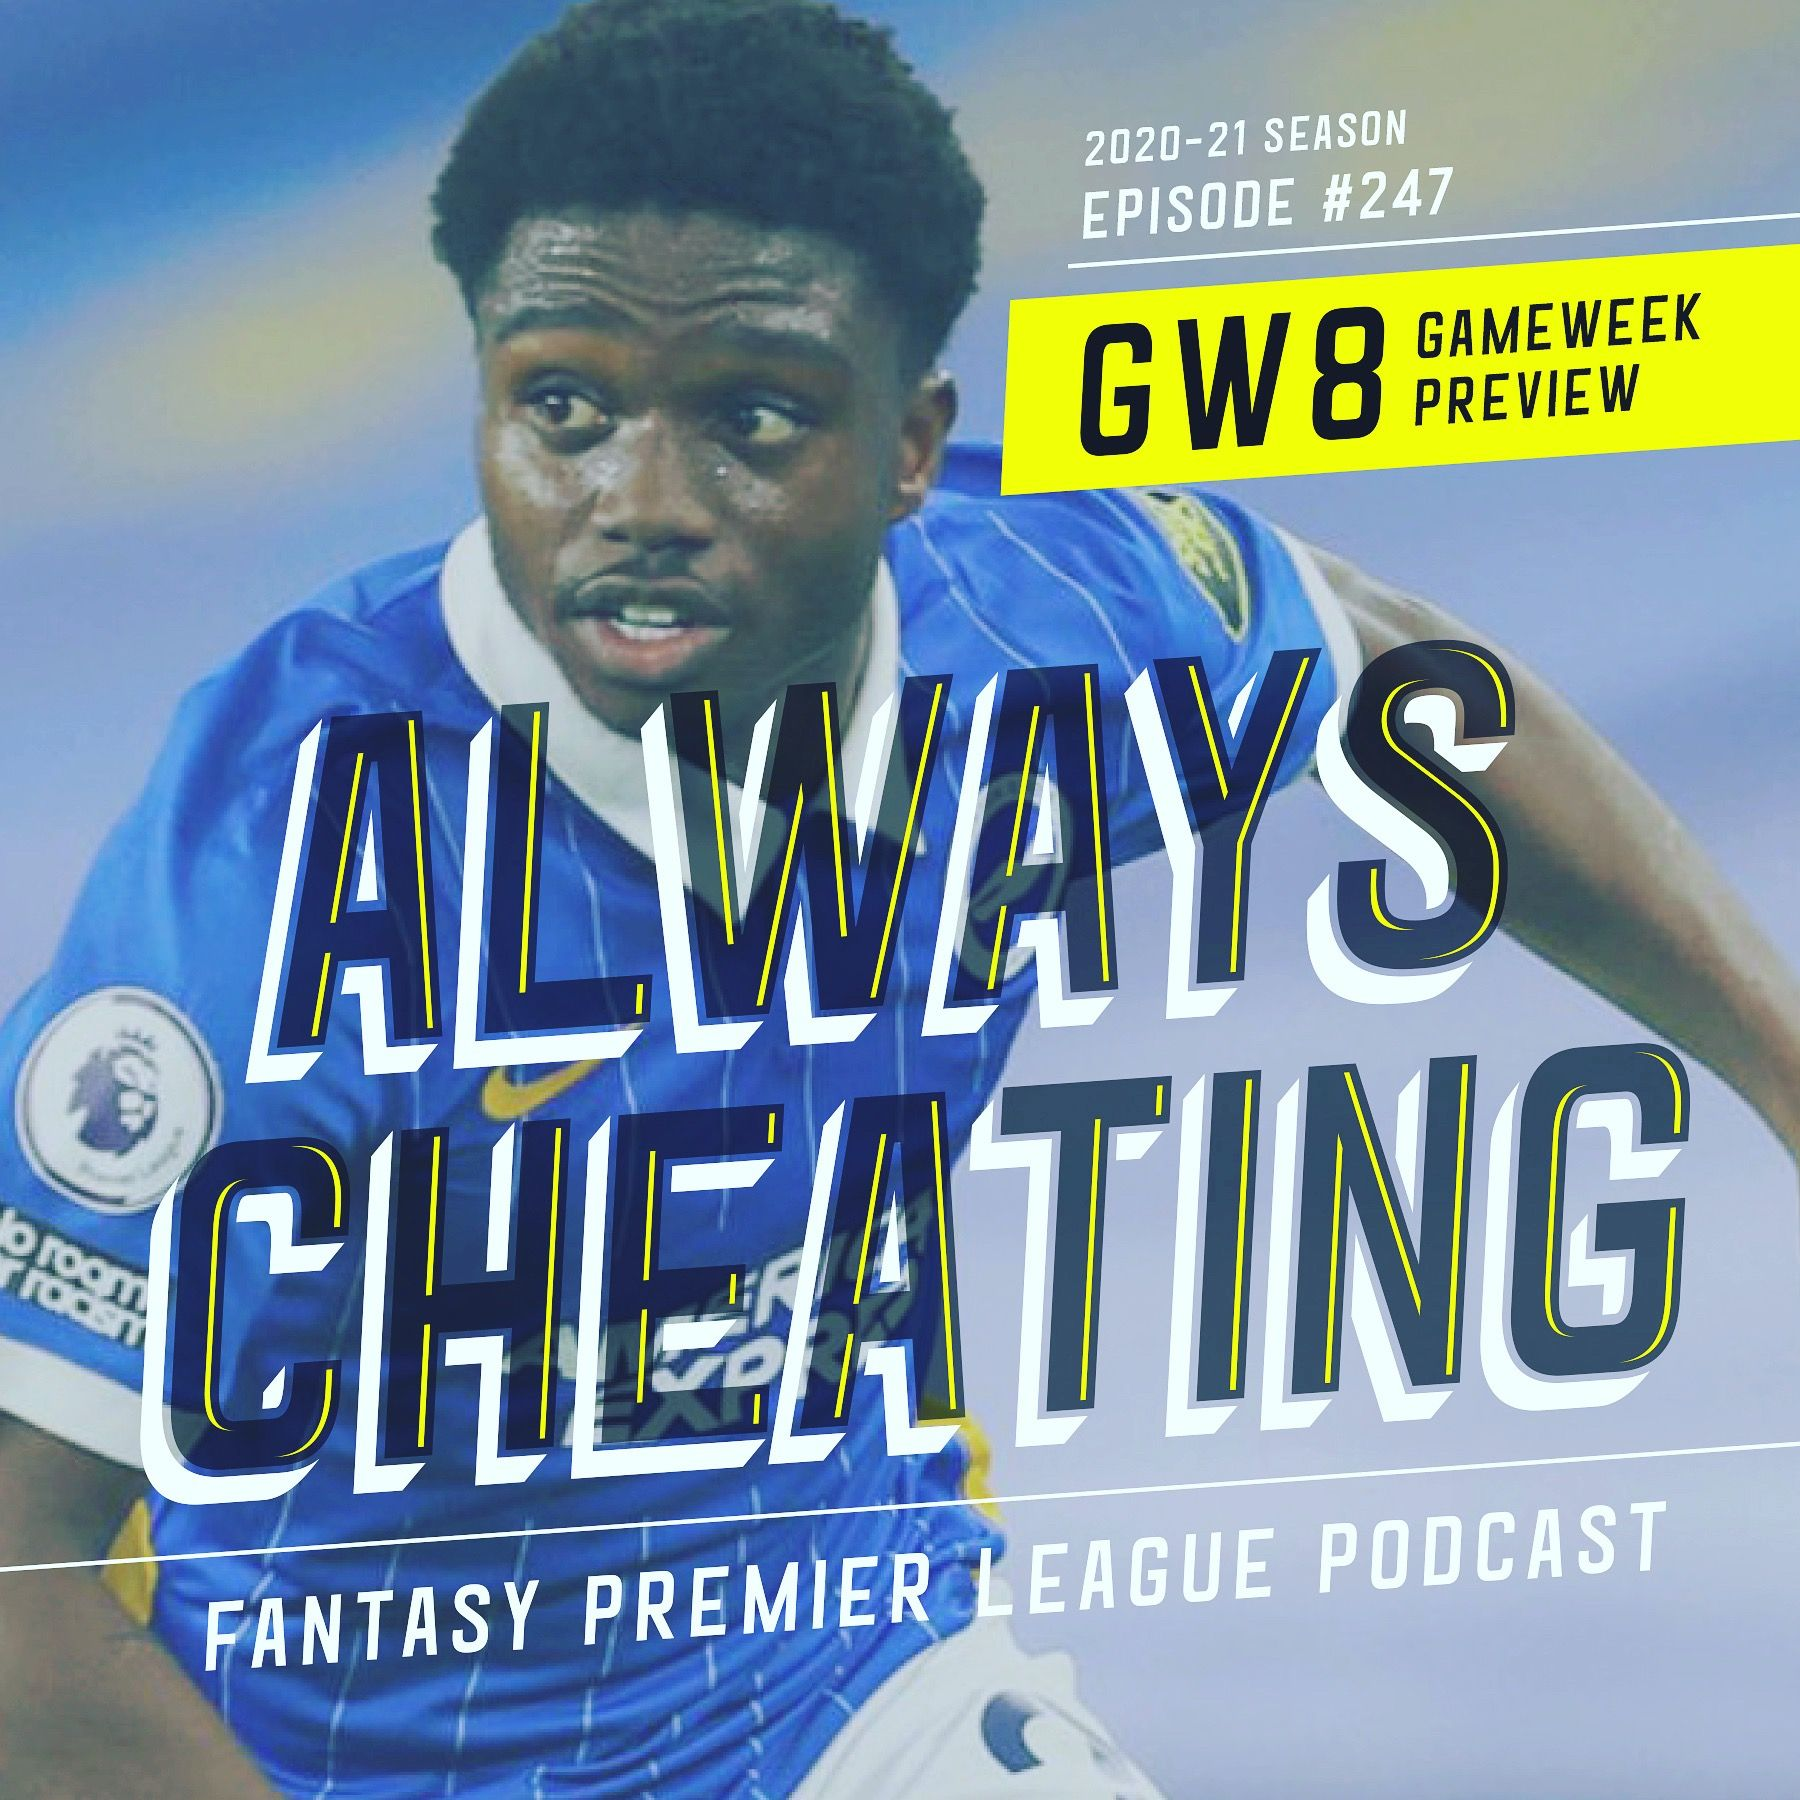 The Blank Slate & GW8 Preview